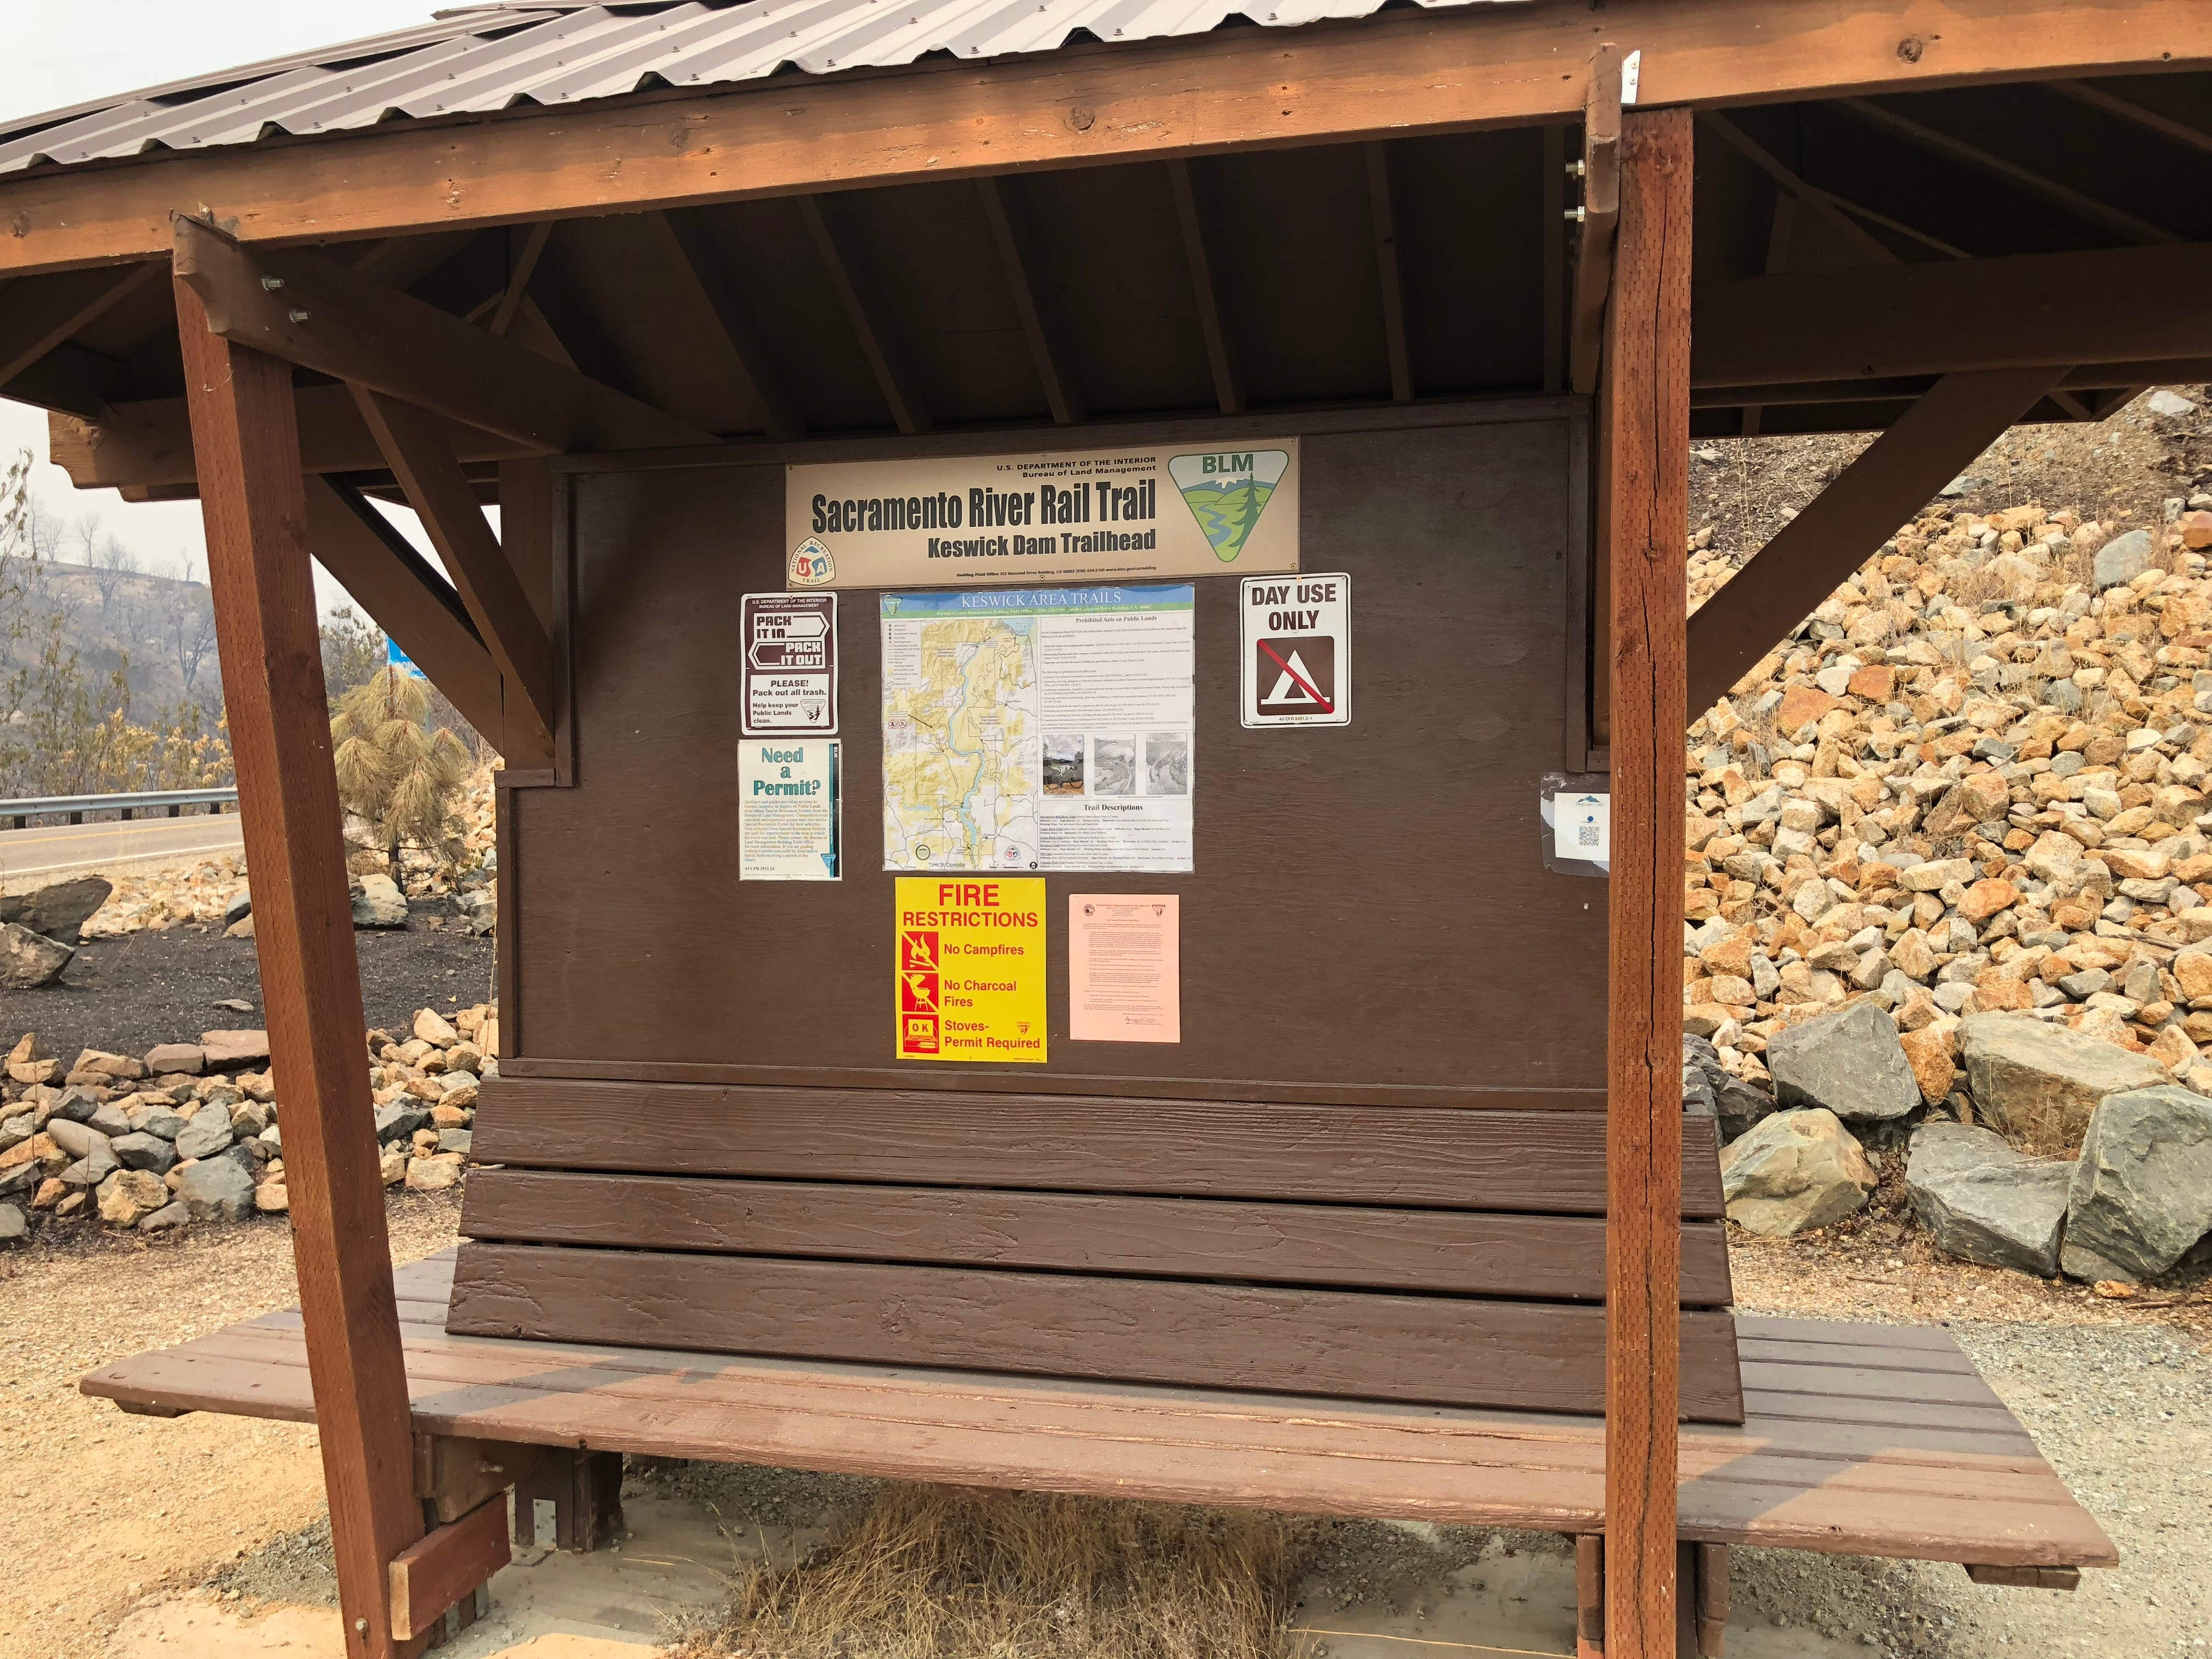 This Keswick Dam Trailhead, west of the dam, has downed power lines and significant fire damage nearby. The trailhead is inaccessible to the public. The bathroom facility near the parking area appears undamaged. This parking lot also serves as the starting point for the Trail 58 French Fry loop.